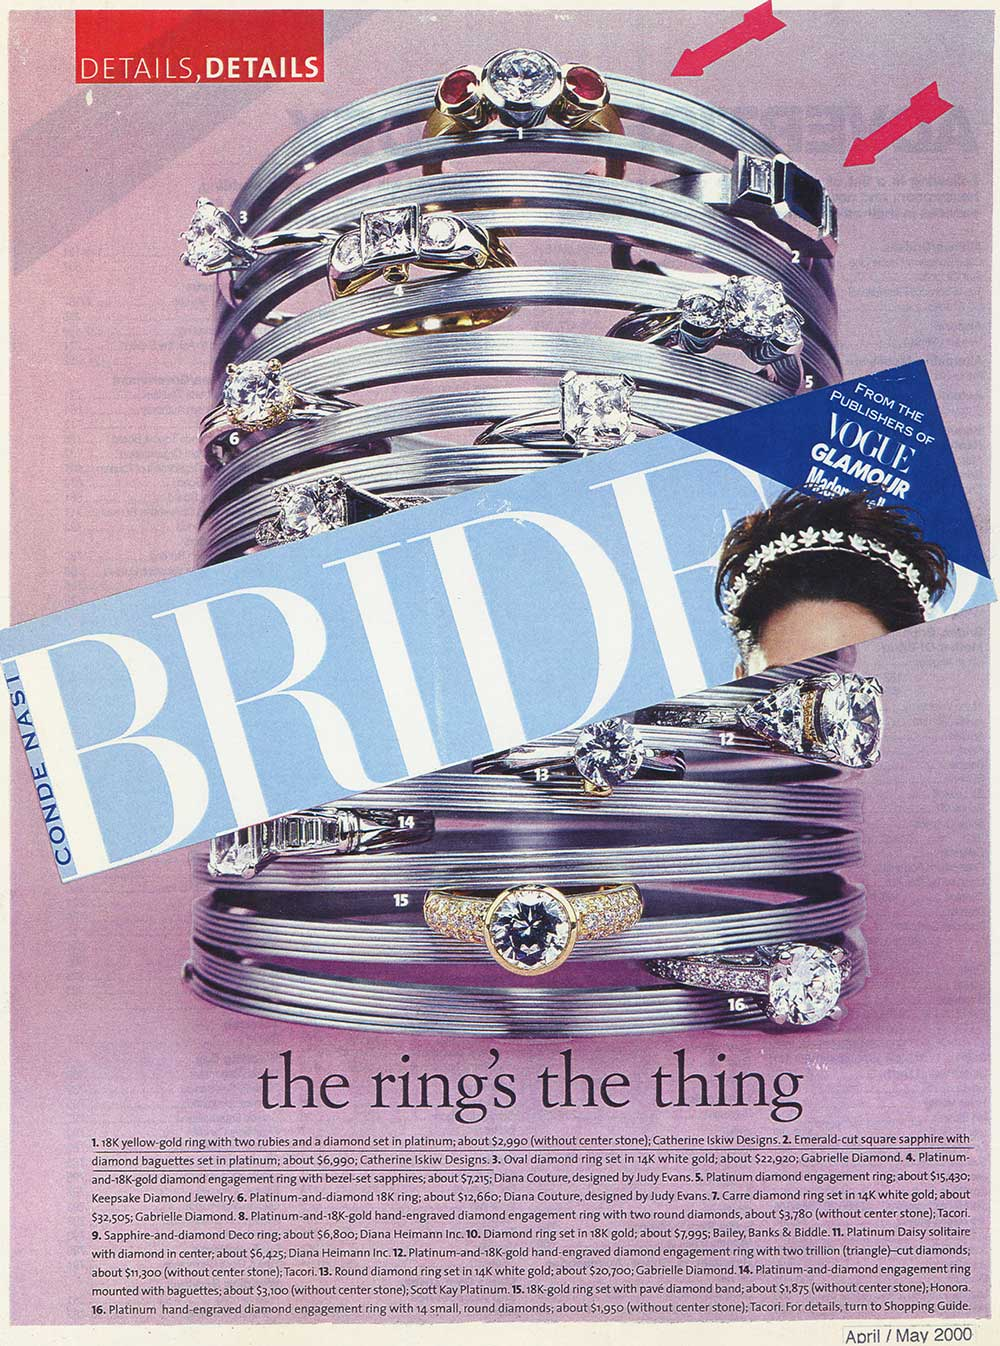 A clip from a Brides cover pasted on an inside page of rings inserted in a slinky including a Catherine Iskiw Designs ring.